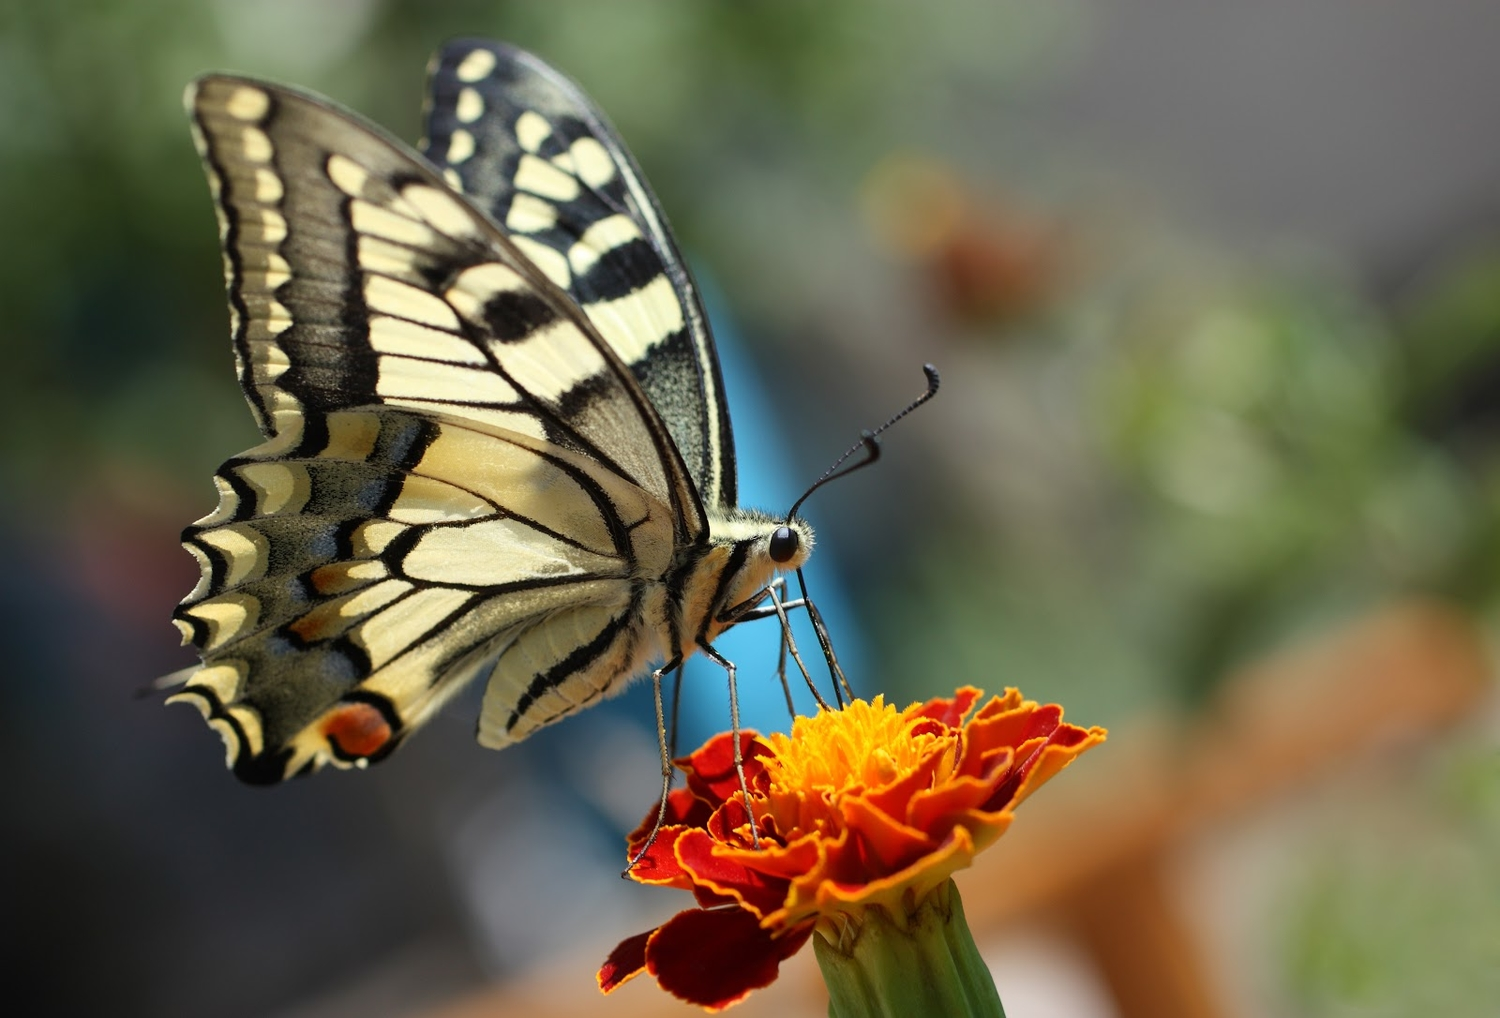 A beginner's guide to butterfly watching